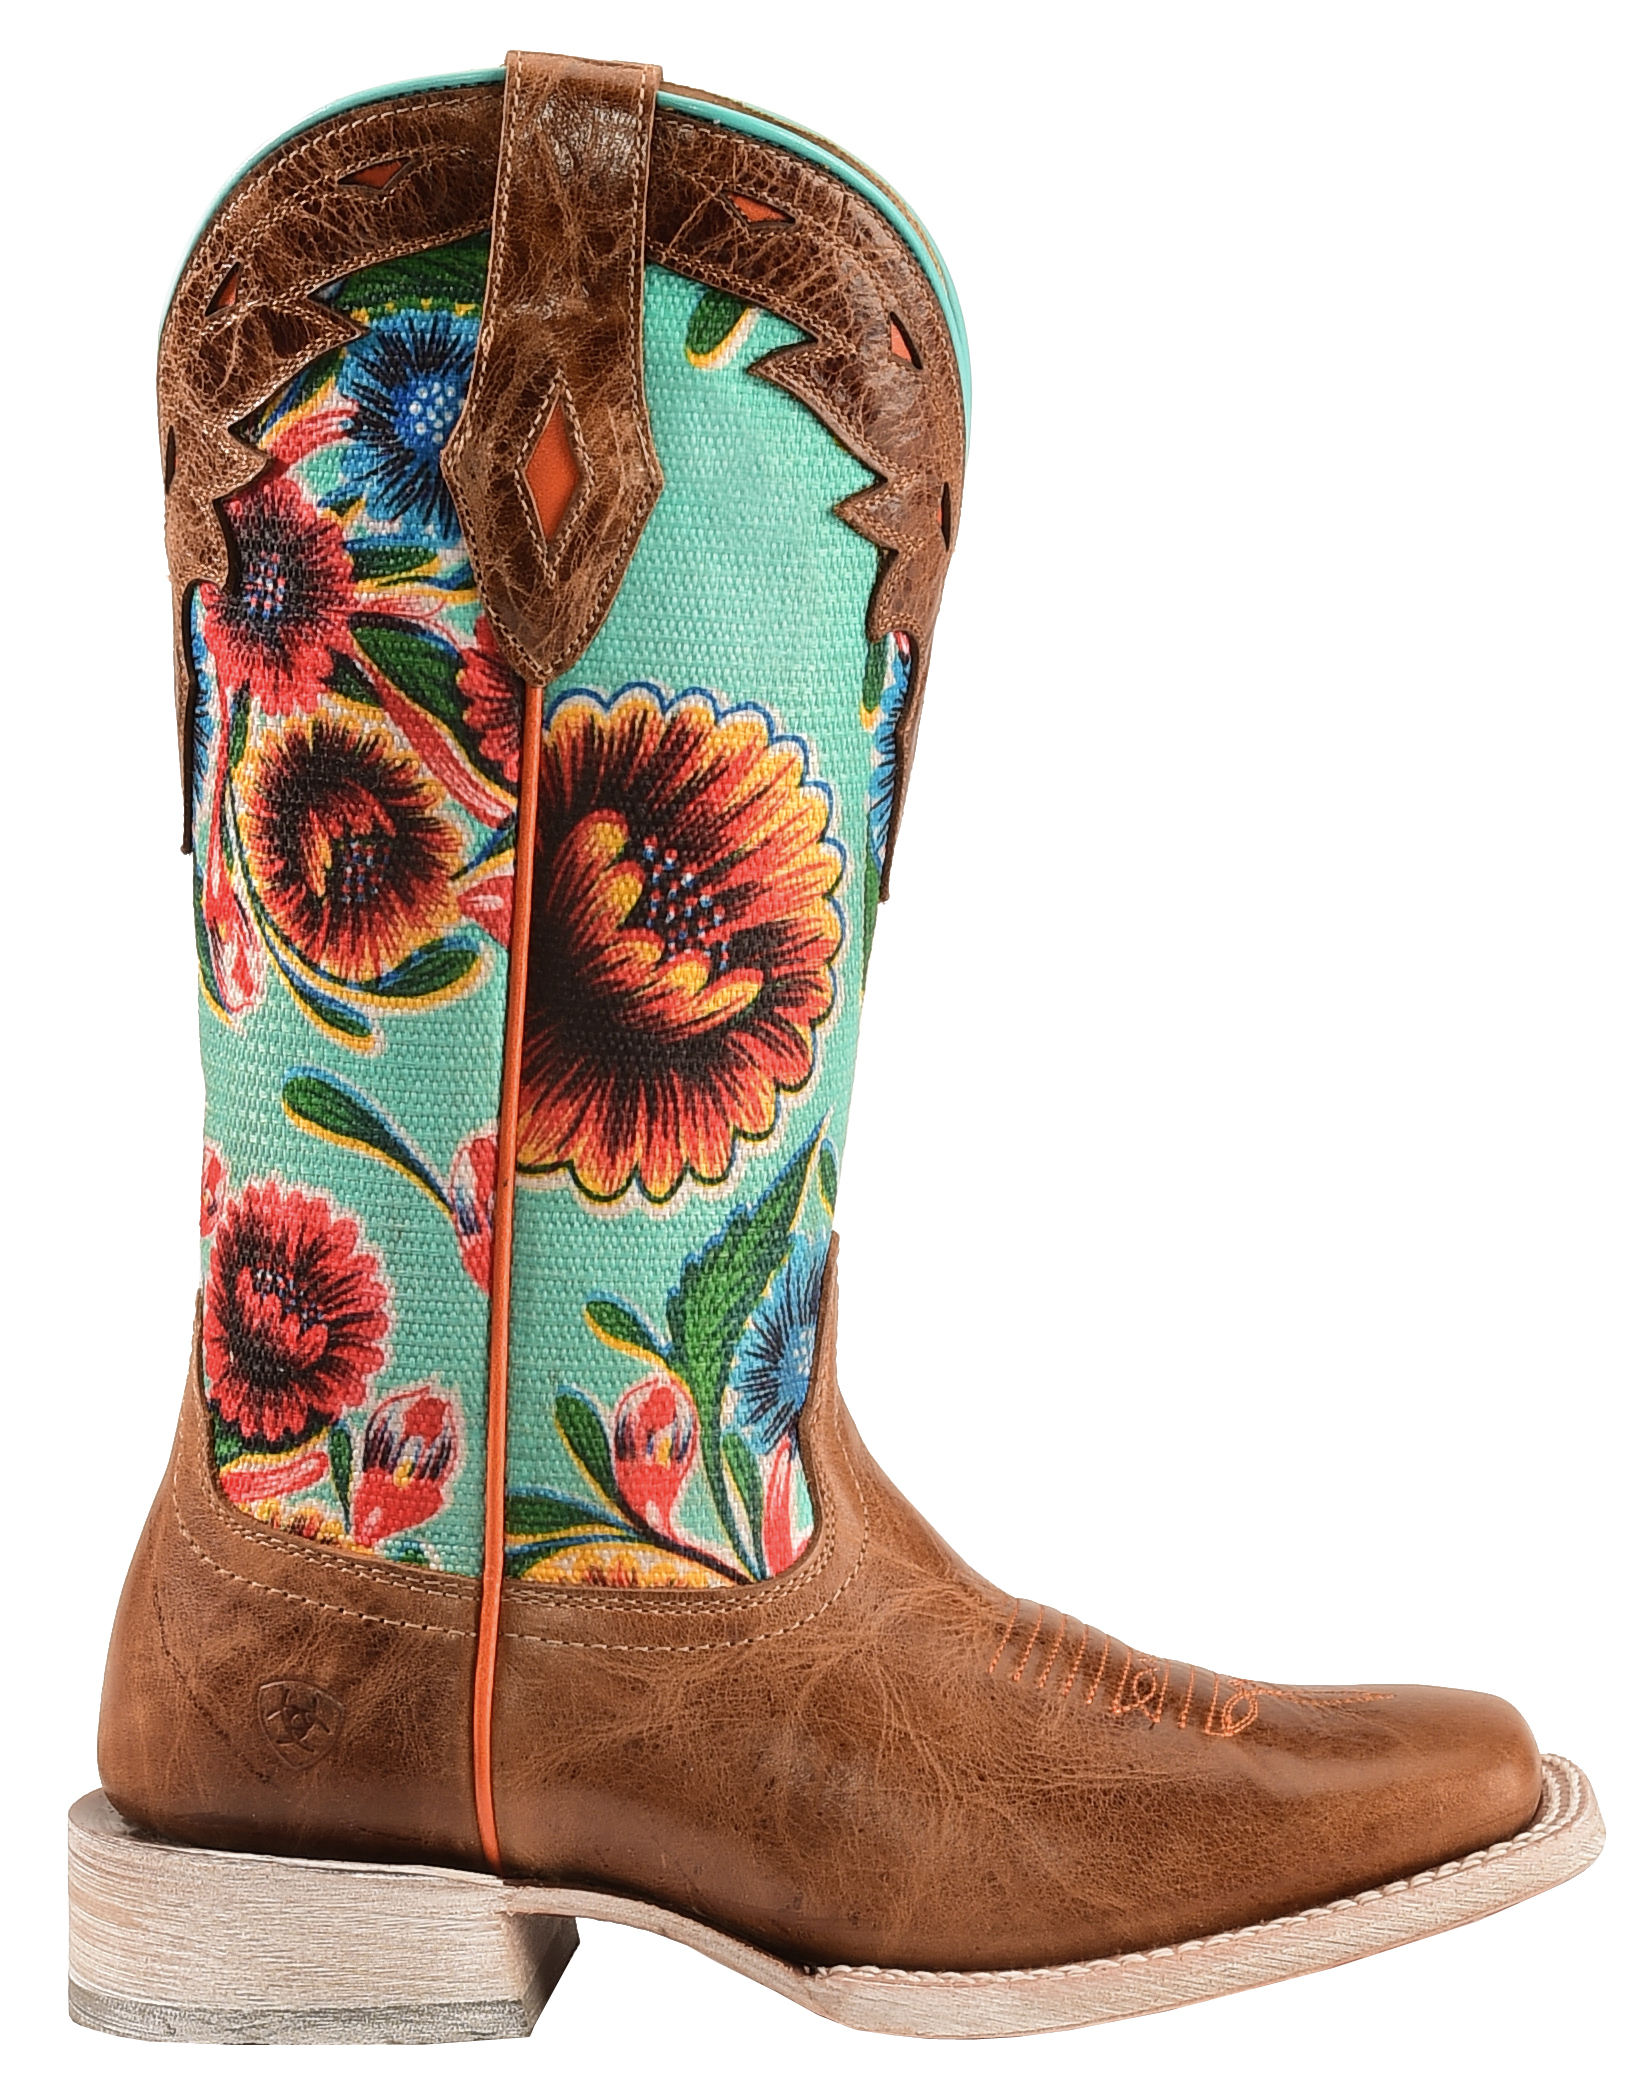 Ariat Floral Textile Circuit Champion Cowgirl Boots